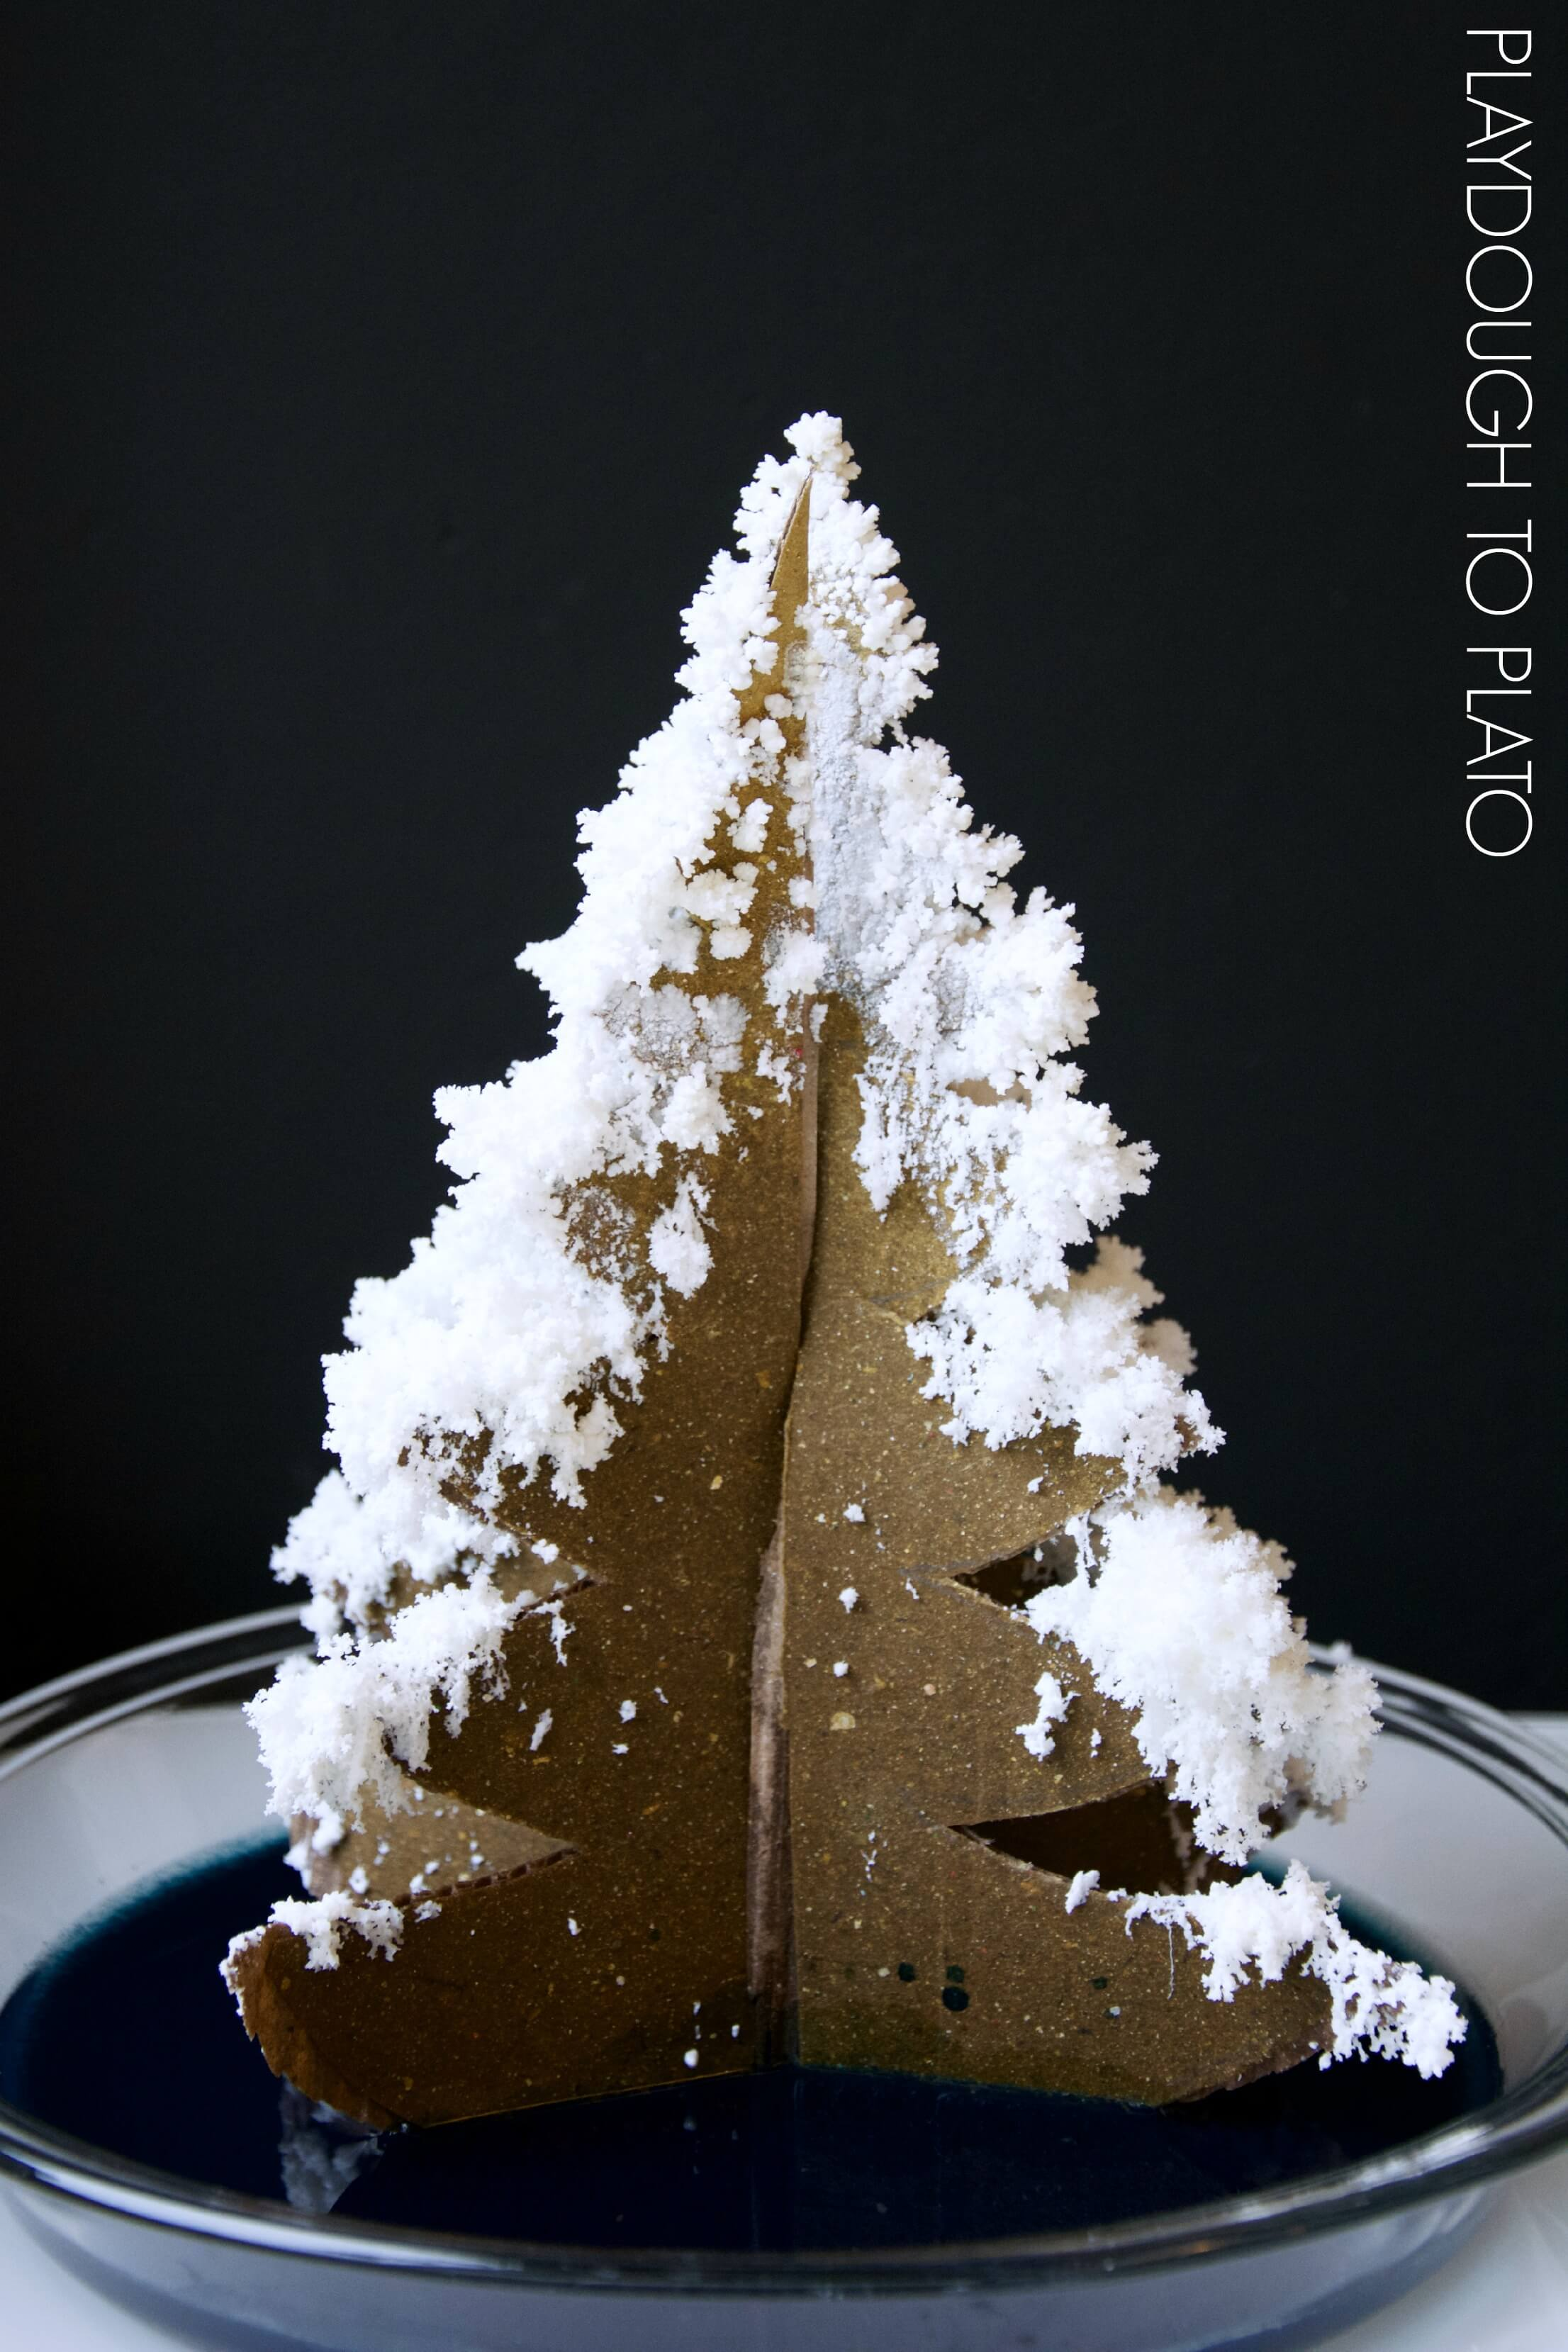 grow a crystal christmas tree what a fun christmas science activity for kids - Crystal Christmas Tree